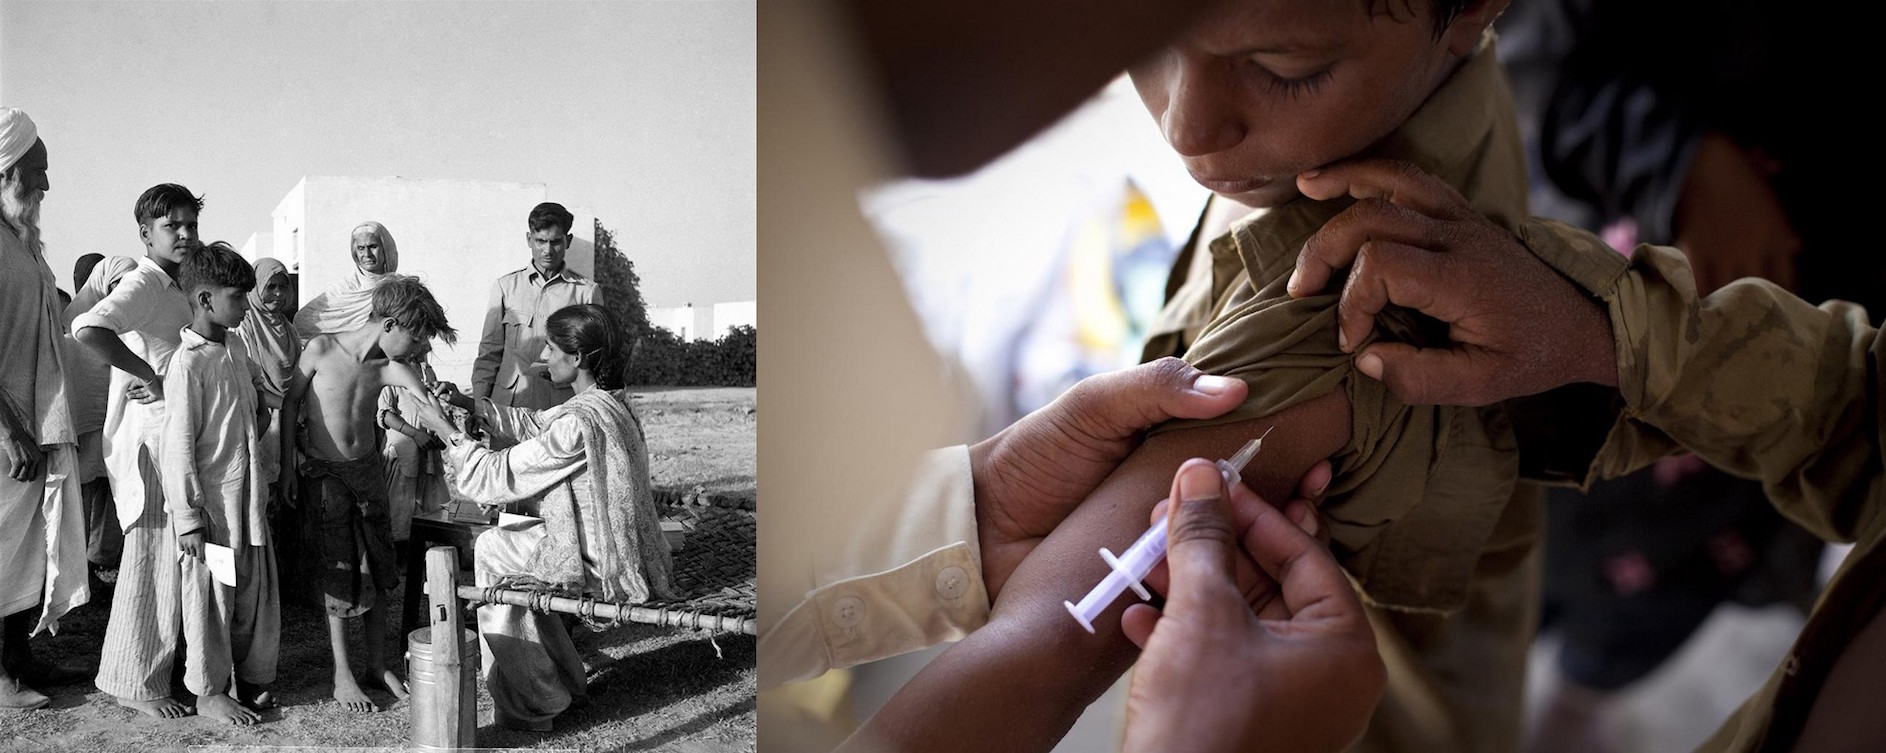 (Left) Circa 1949 in India, a health worker vaccinates a boy against tuberculosis in the town of Faridabad, near Delhi. (Right) In 2010, a health worker vaccinates a boy in a camp for people displaced by flooding, in Sindh Province in Pakistan.